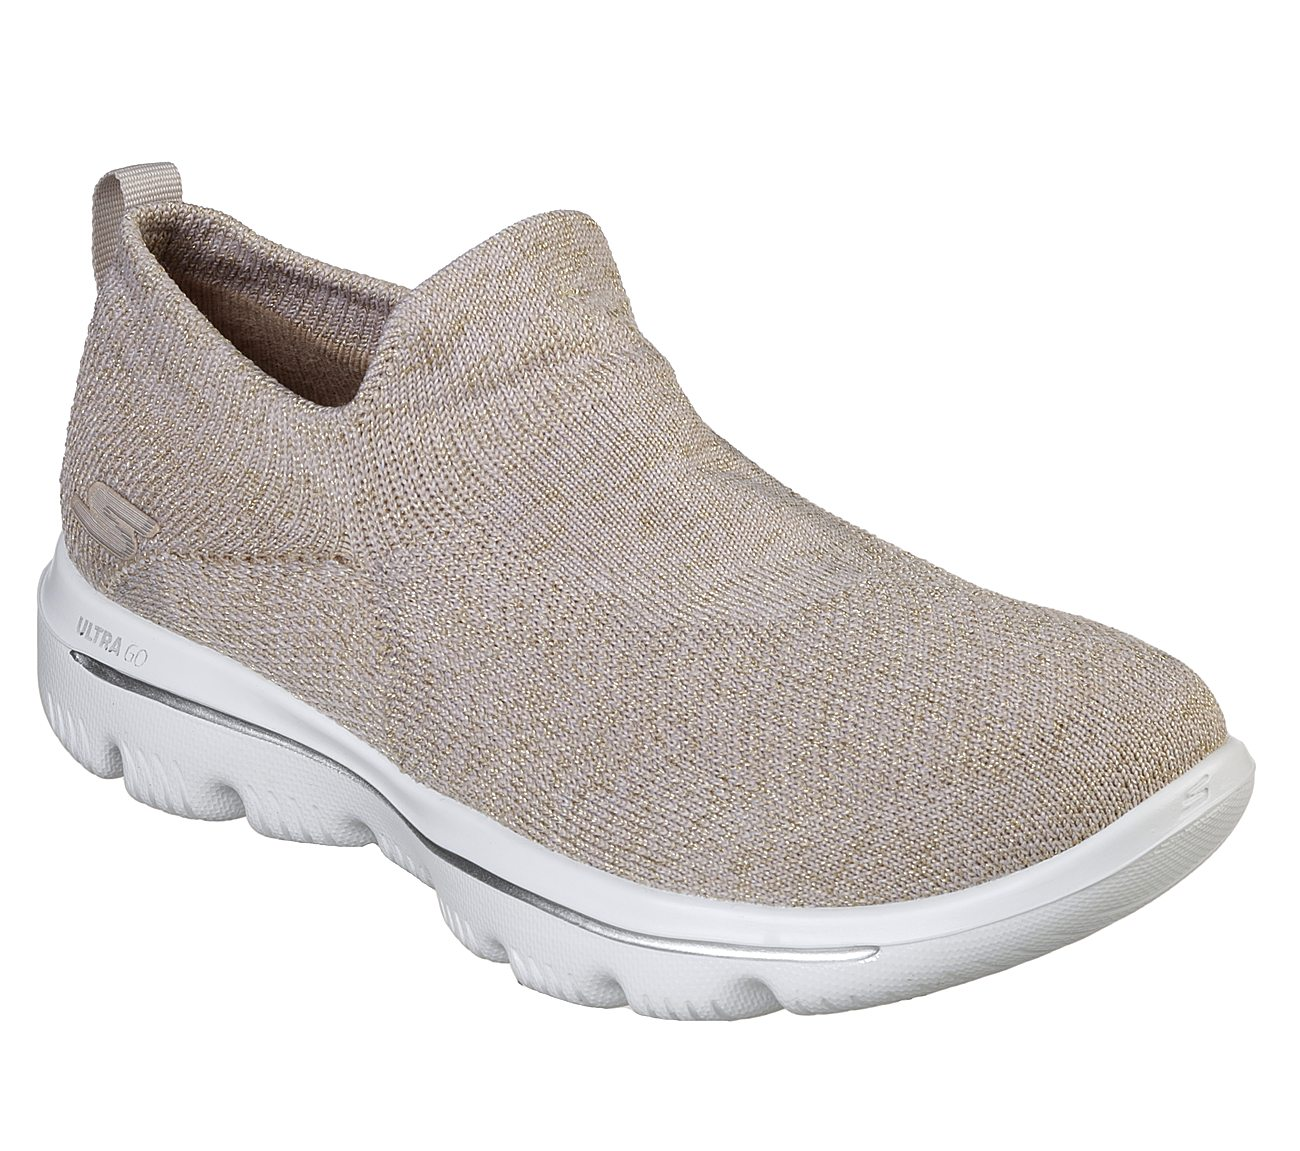 Skechers GOwalk Evolution Ultra - Assurance